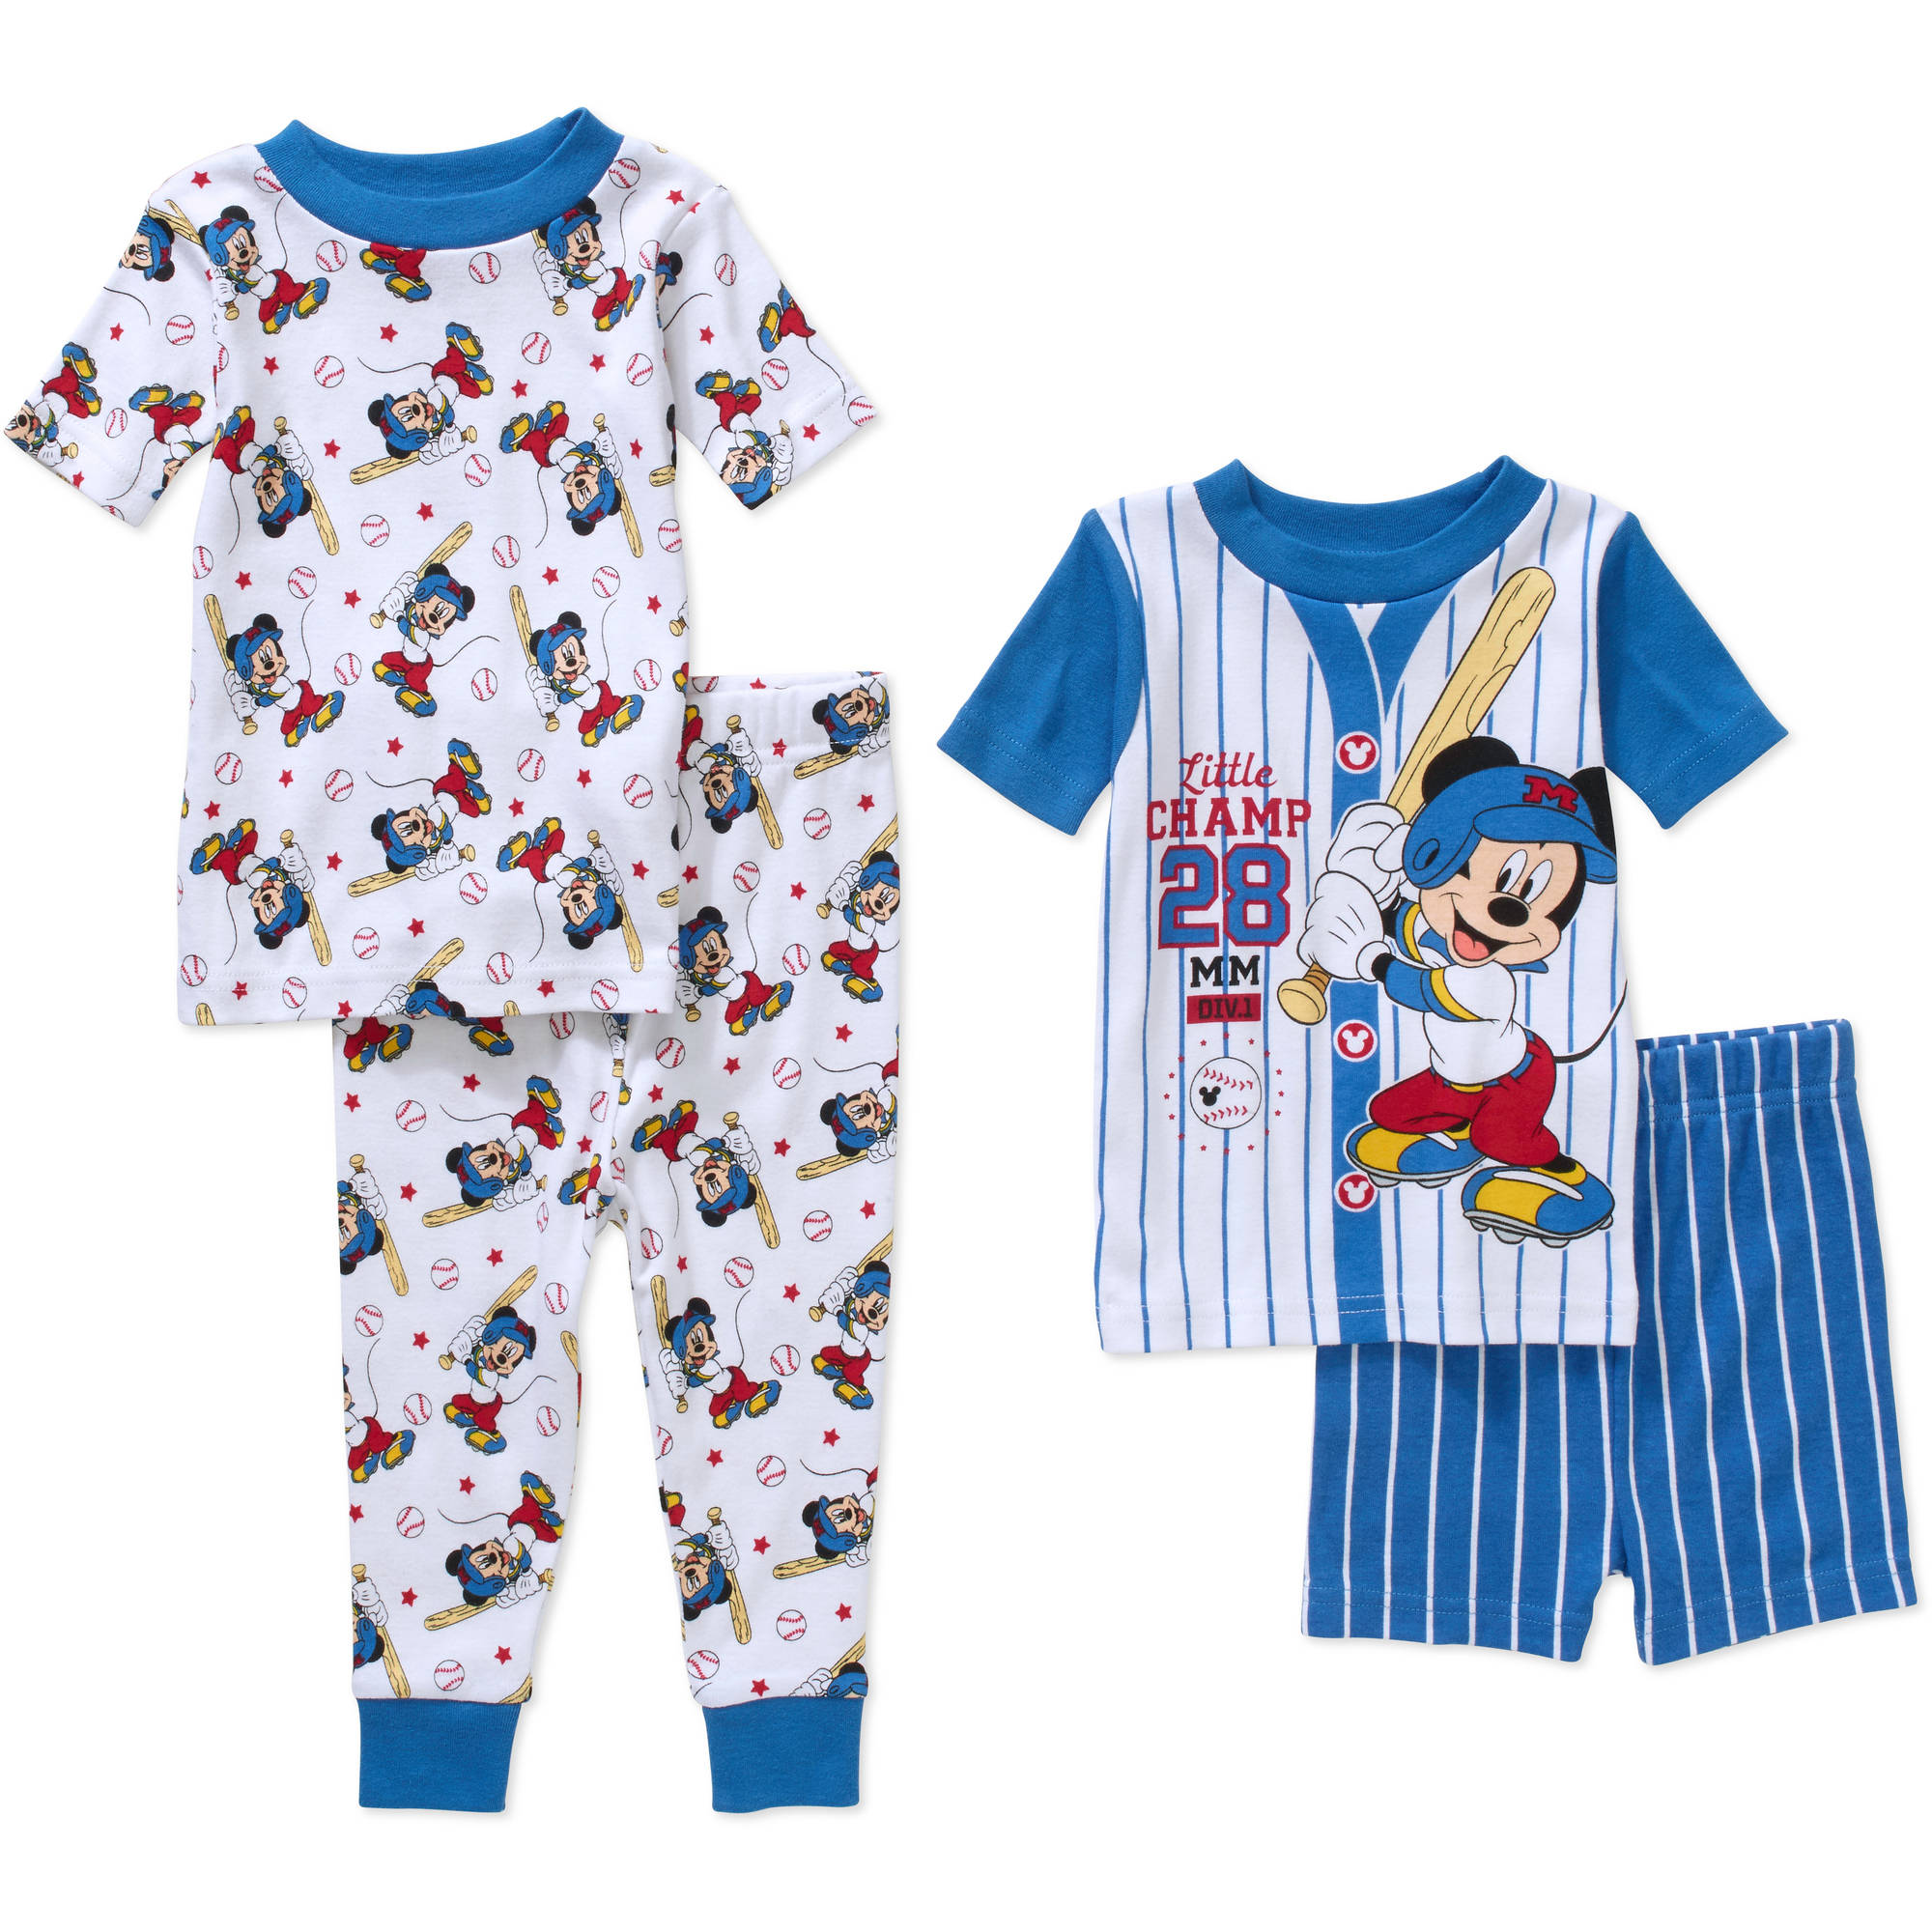 Mickey Mouse Infant Baby Boy' Mix n' Match Short Sleeve Cotton Tight Fit Pajamas, 4-Pieces